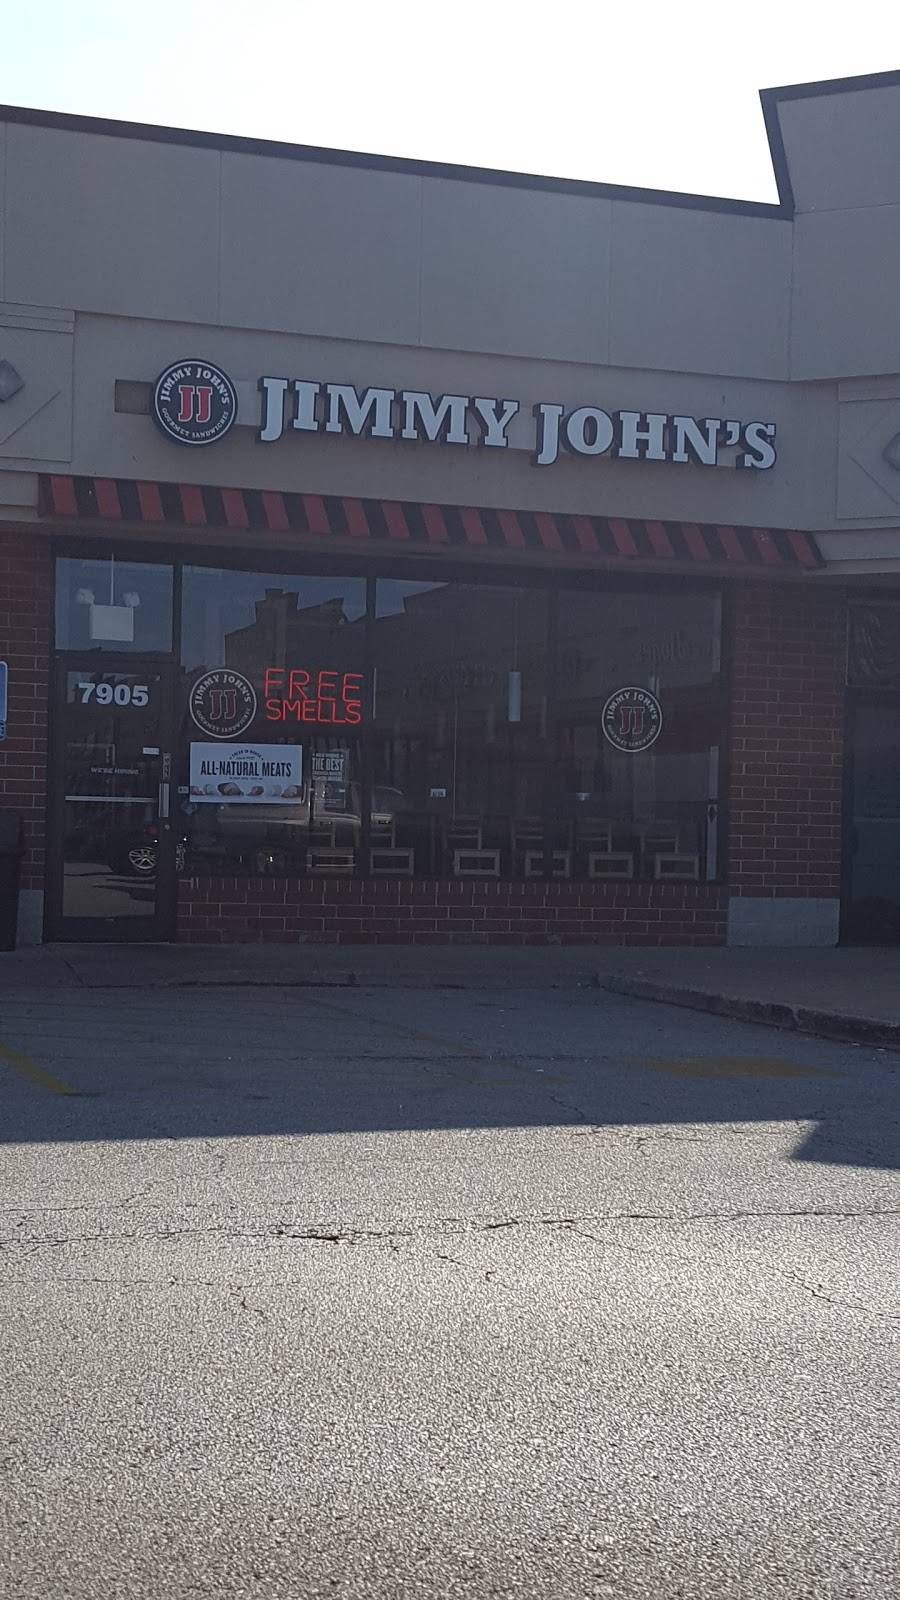 Jimmy Johns   meal delivery   7905 W 171st St, Tinley Park, IL 60477, USA   7084442525 OR +1 708-444-2525